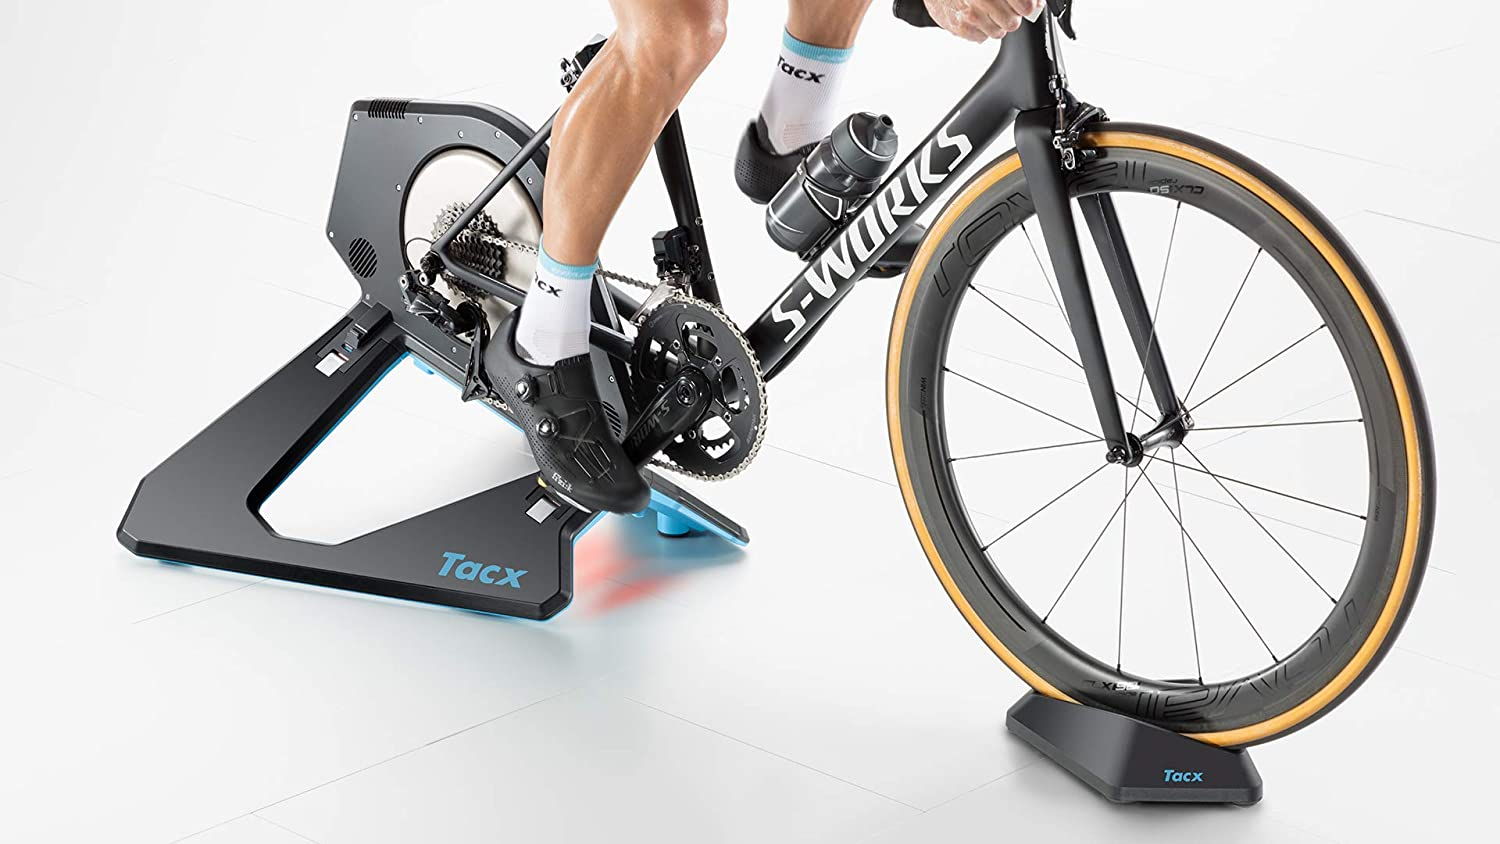 Tacx Neo 2 Smart Roller Bicycle Trainer - Bicicleta (Roller Bicycle Trainer, Carbón Vegetal, 85 NM, 125 kg, 2200 W, 620 mm): Amazon.es: Deportes y aire libre